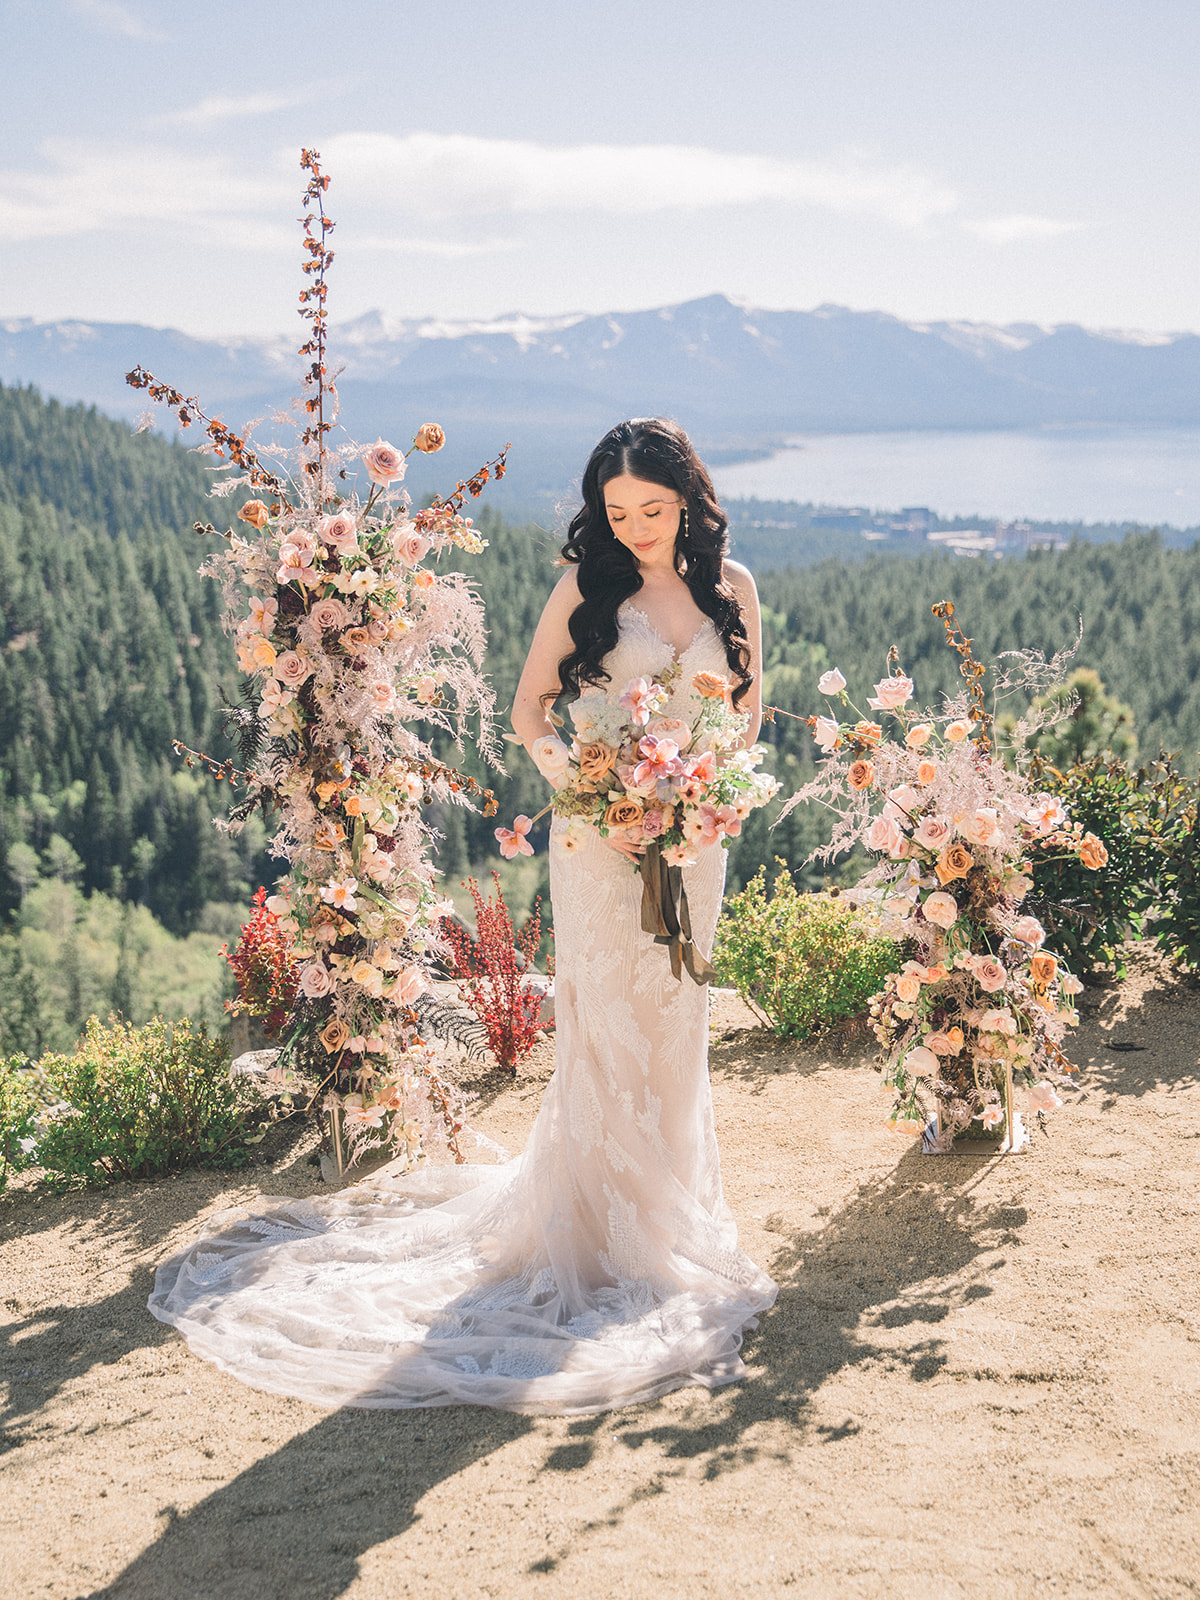 Modern bohemian wedding inspiration at Lake Tahoe with four dreamy bridal gowns